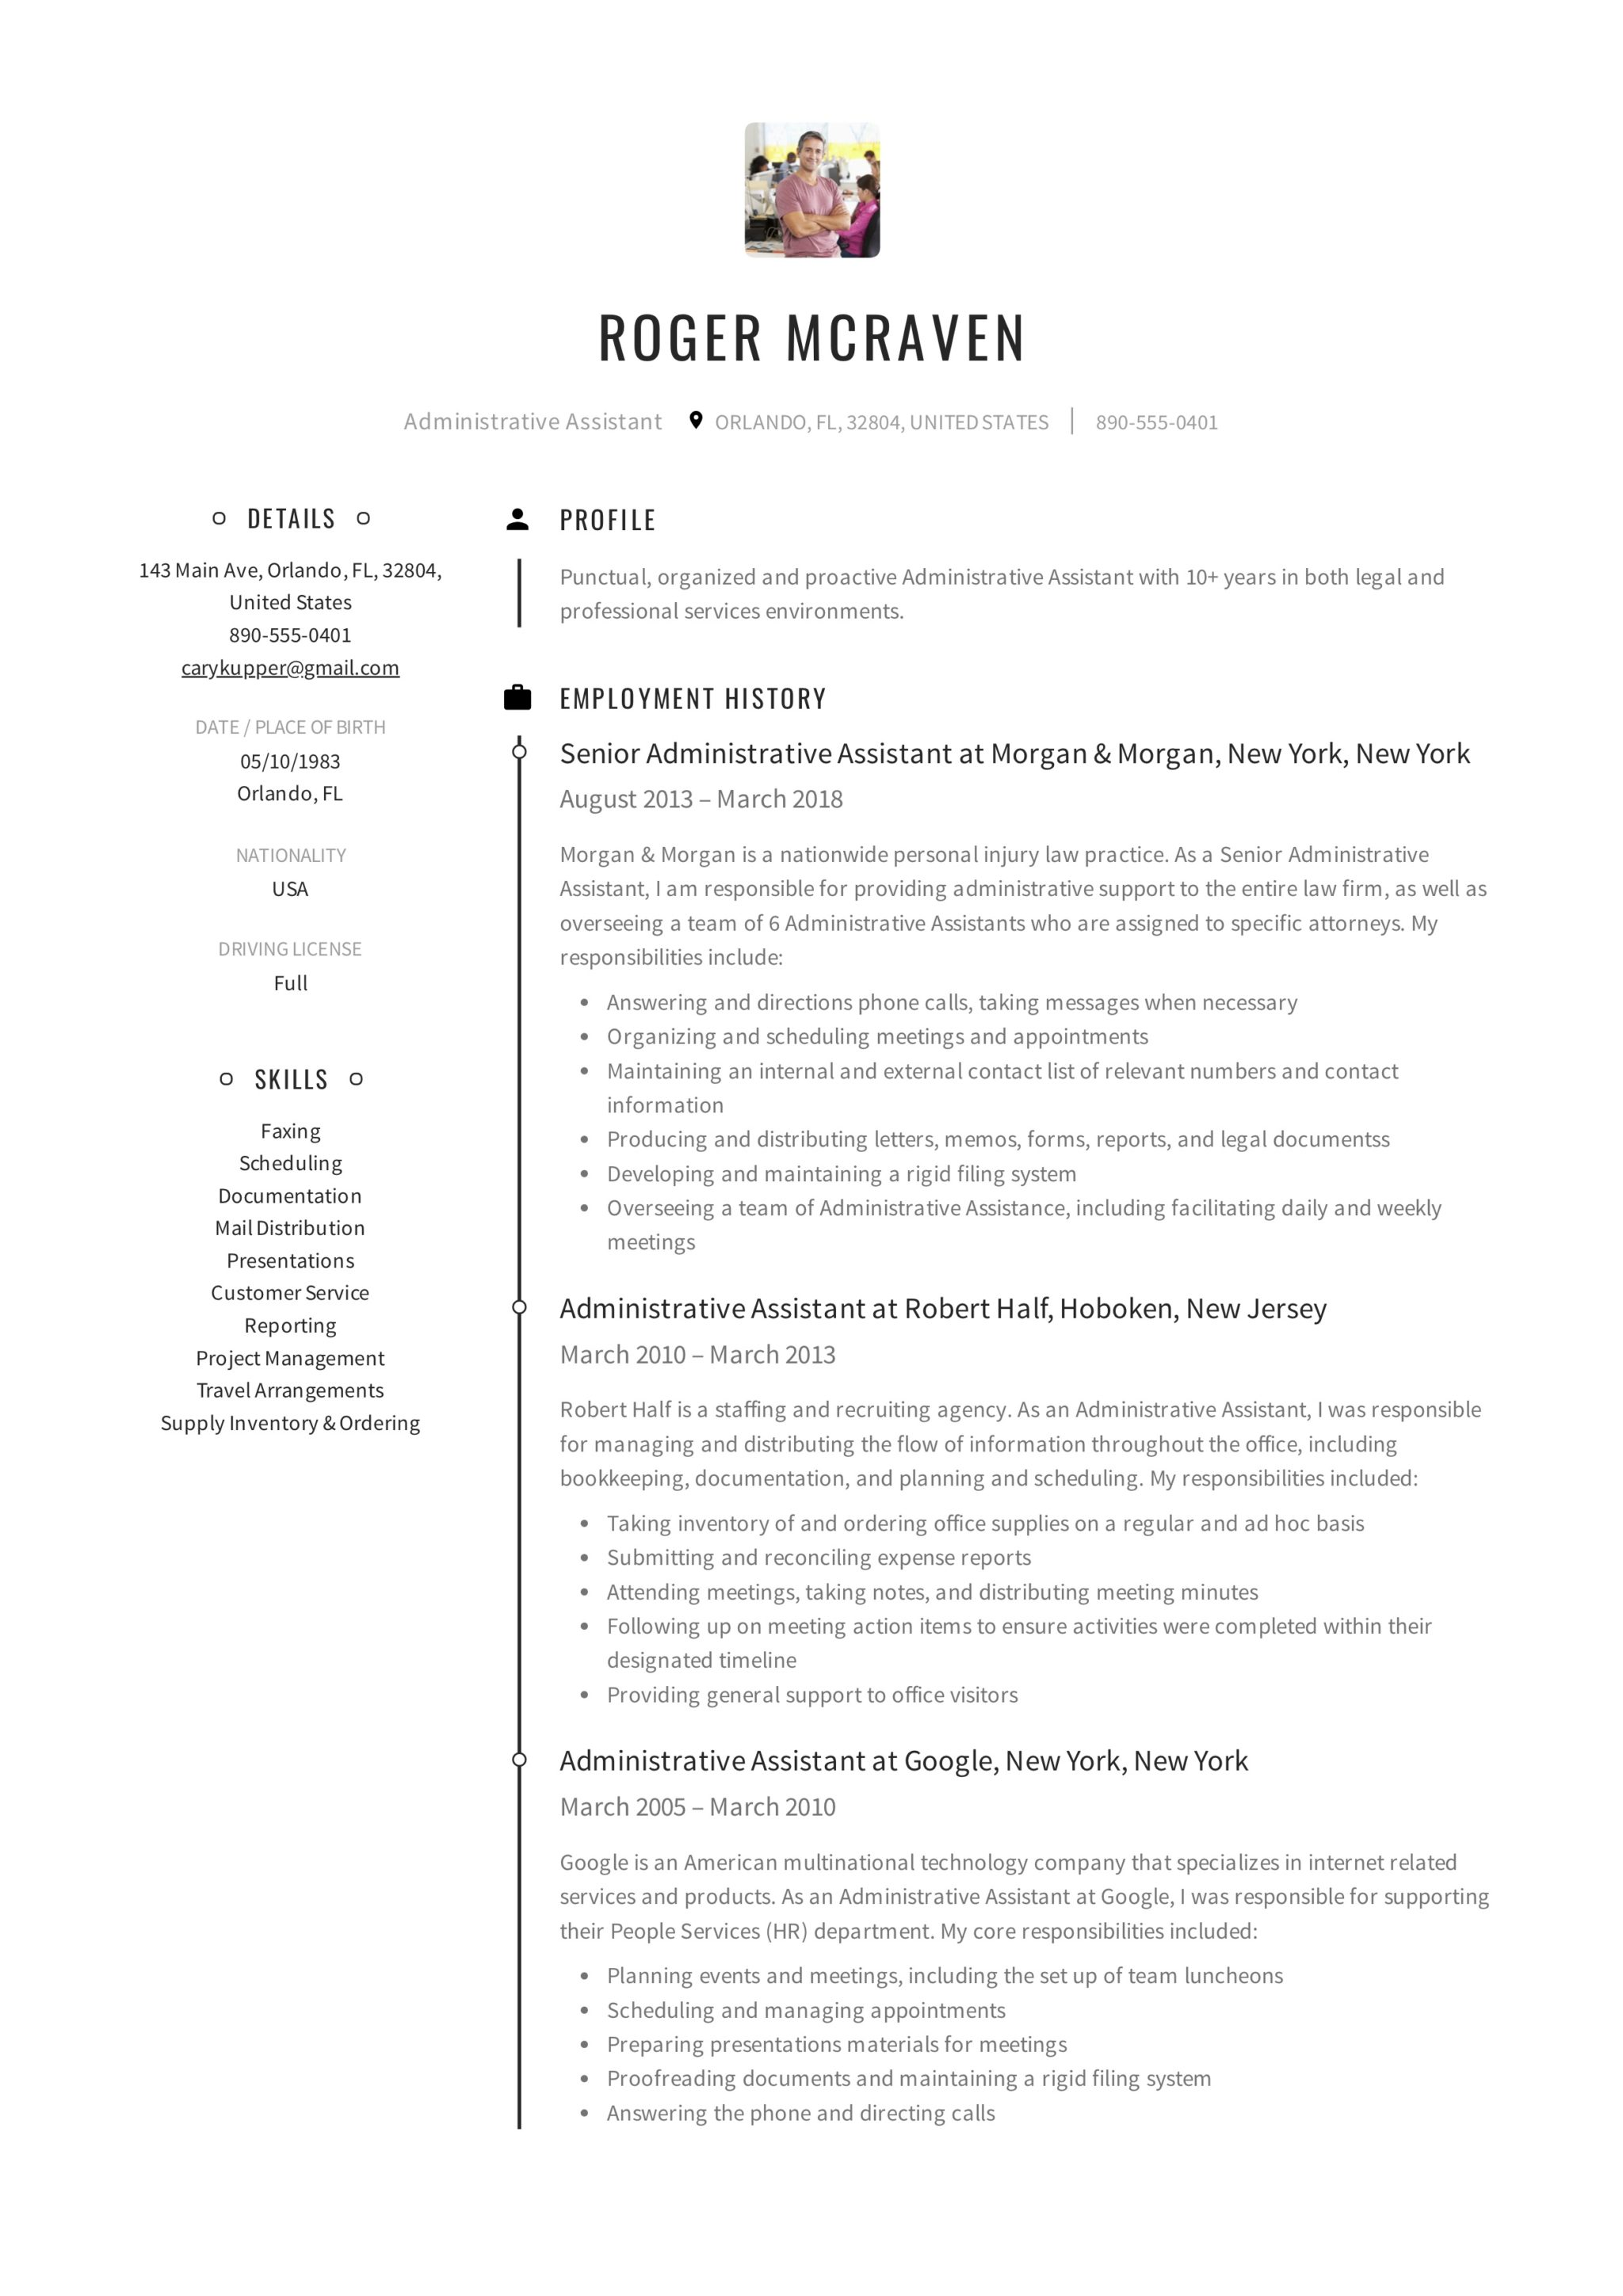 12 Administrative Assistant Resume Samples - 2018 (Free Downloads)